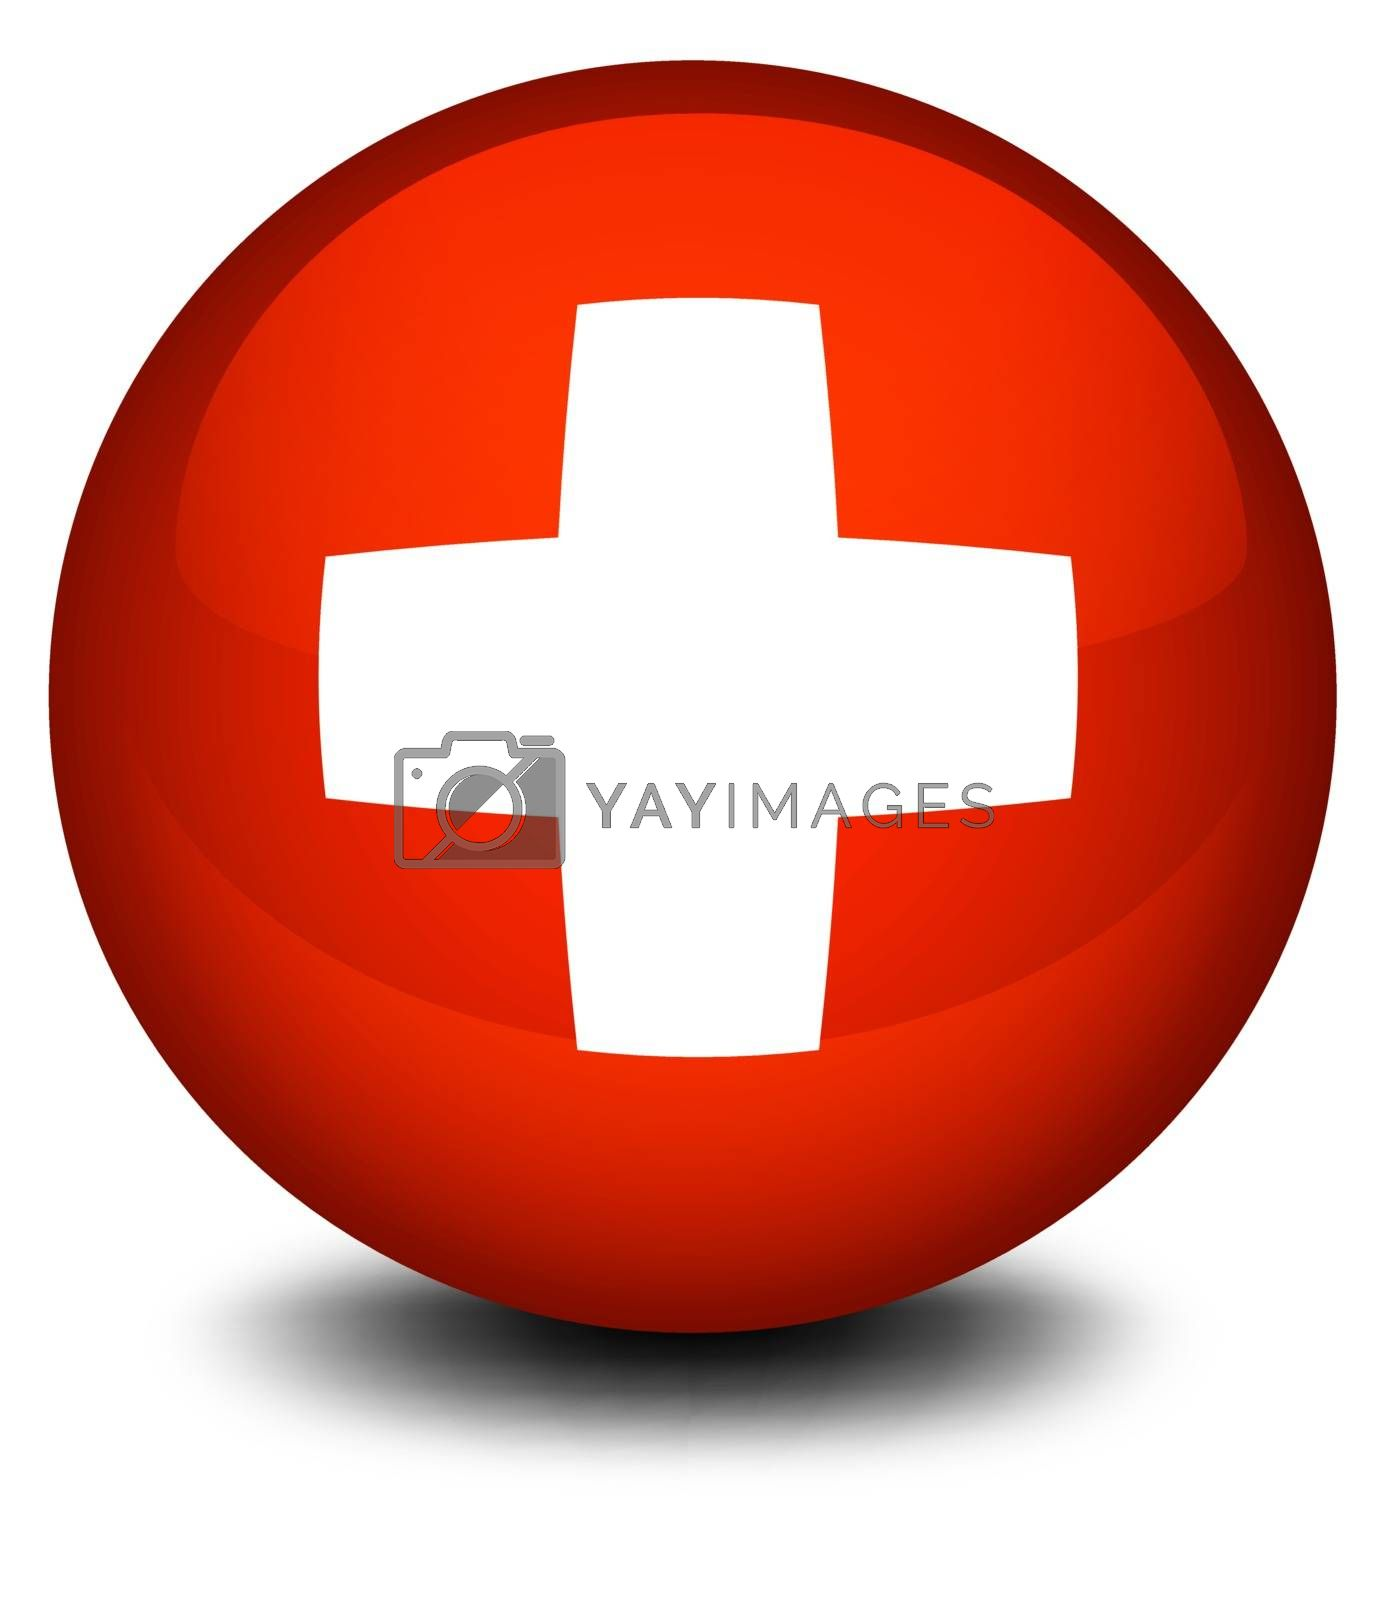 Illustration of the flag of Switzerland in a ball on a white background